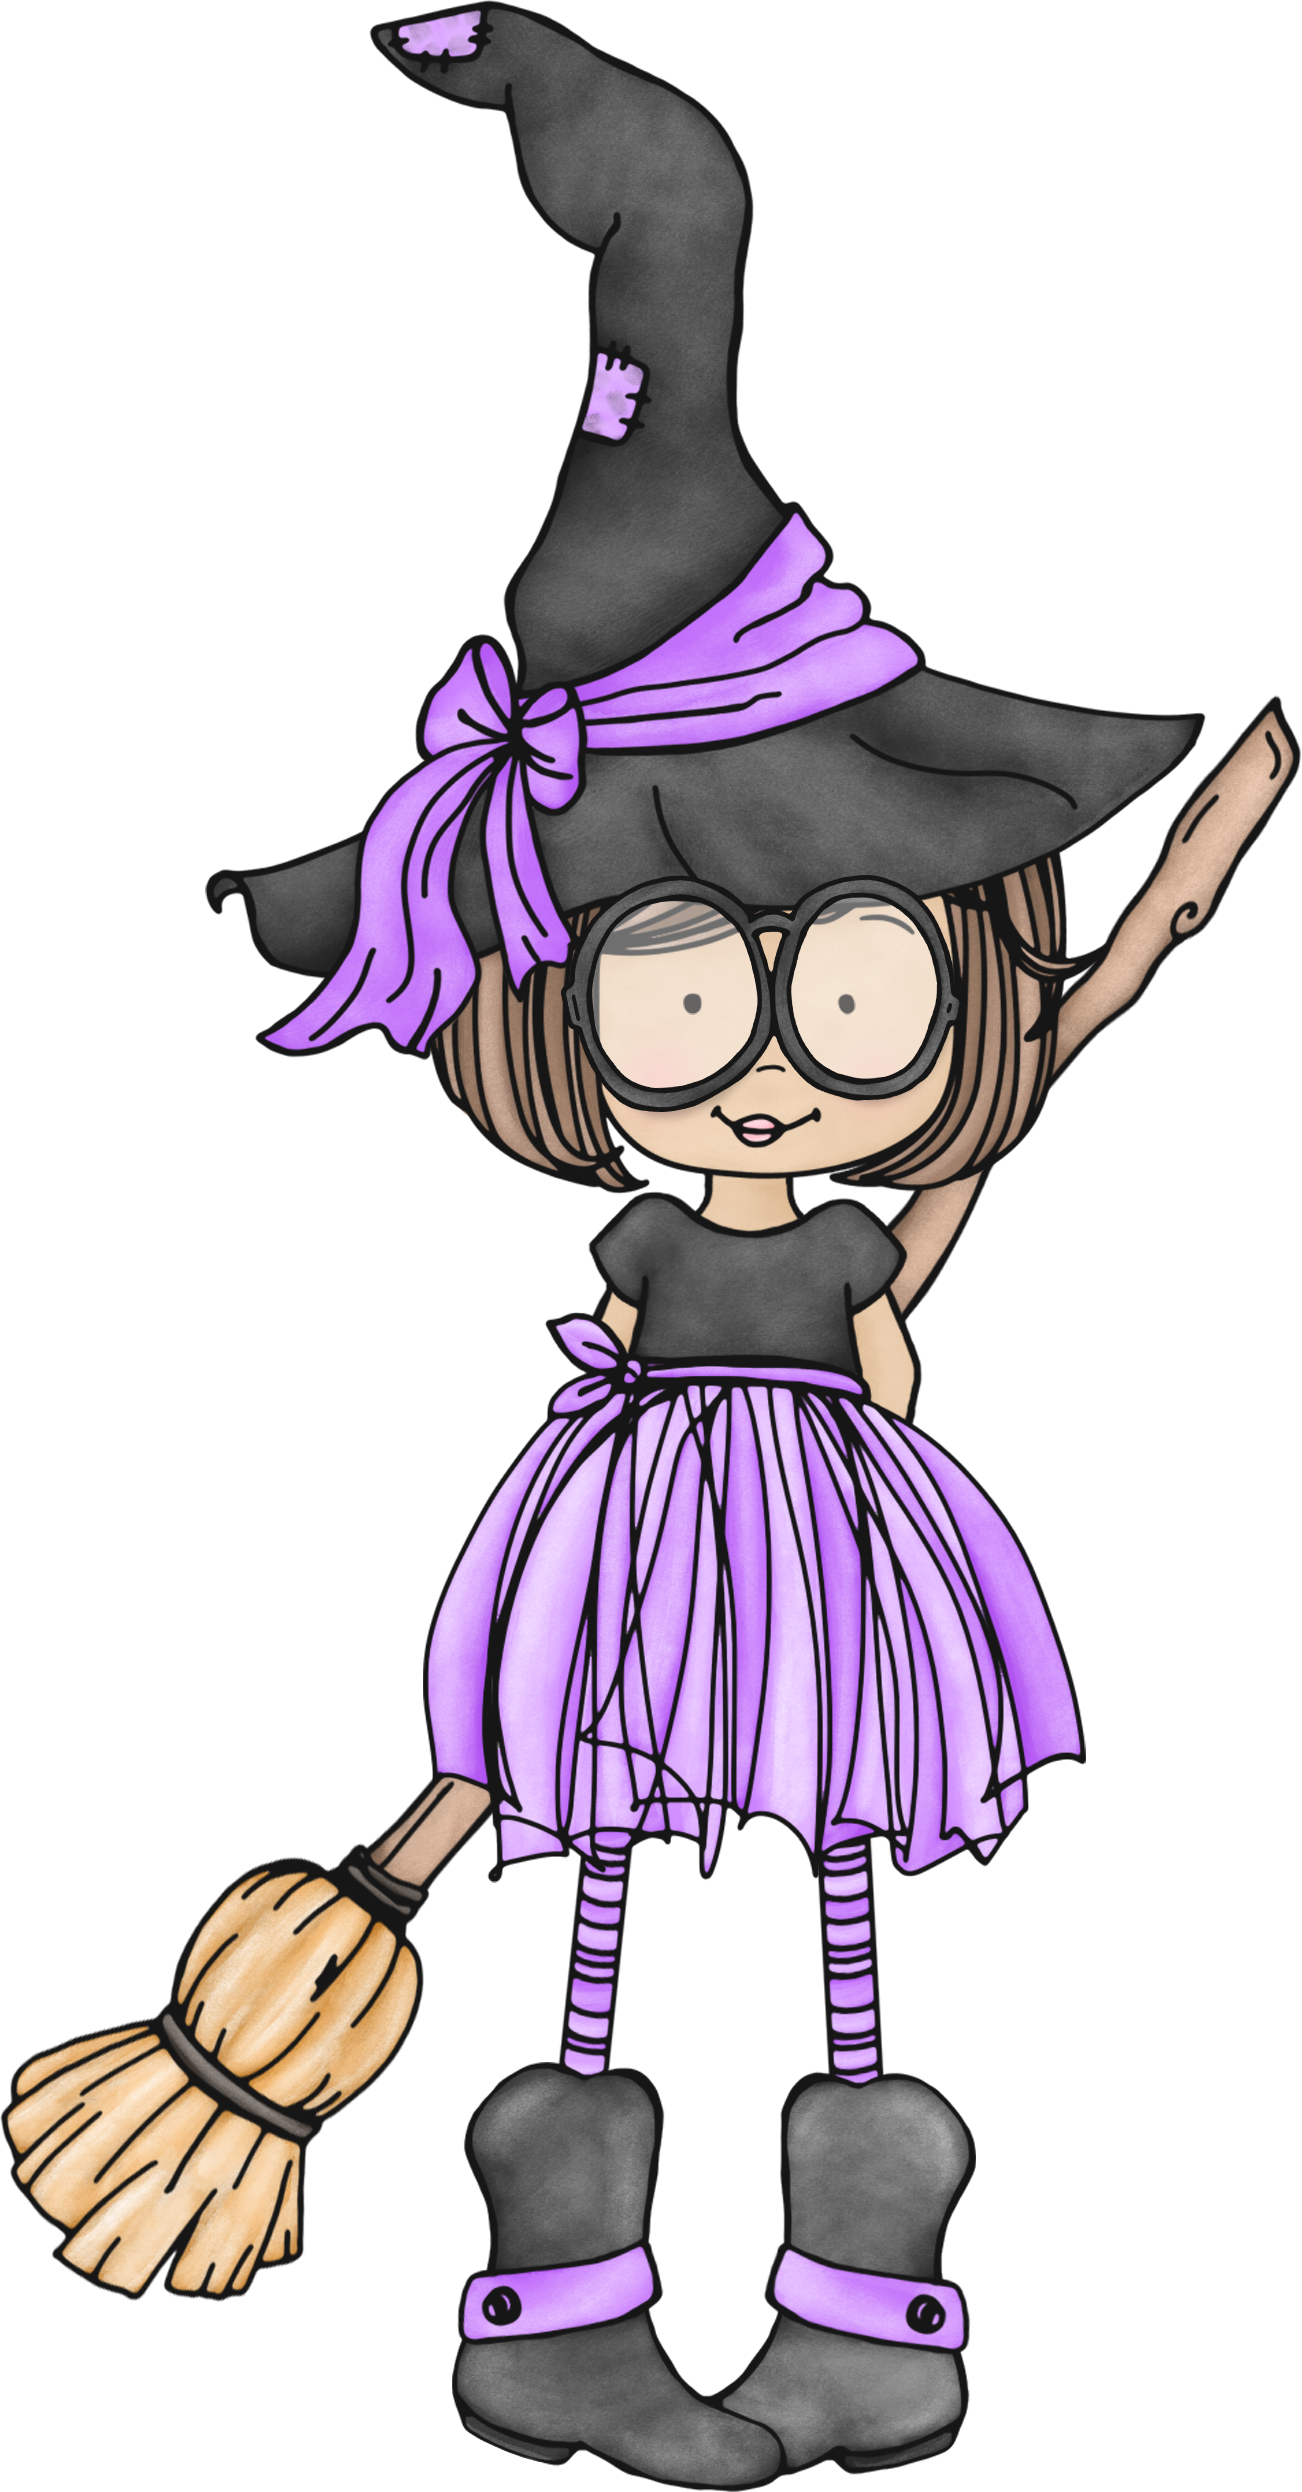 Pretty witch at getdrawings. Clipart walking person cute